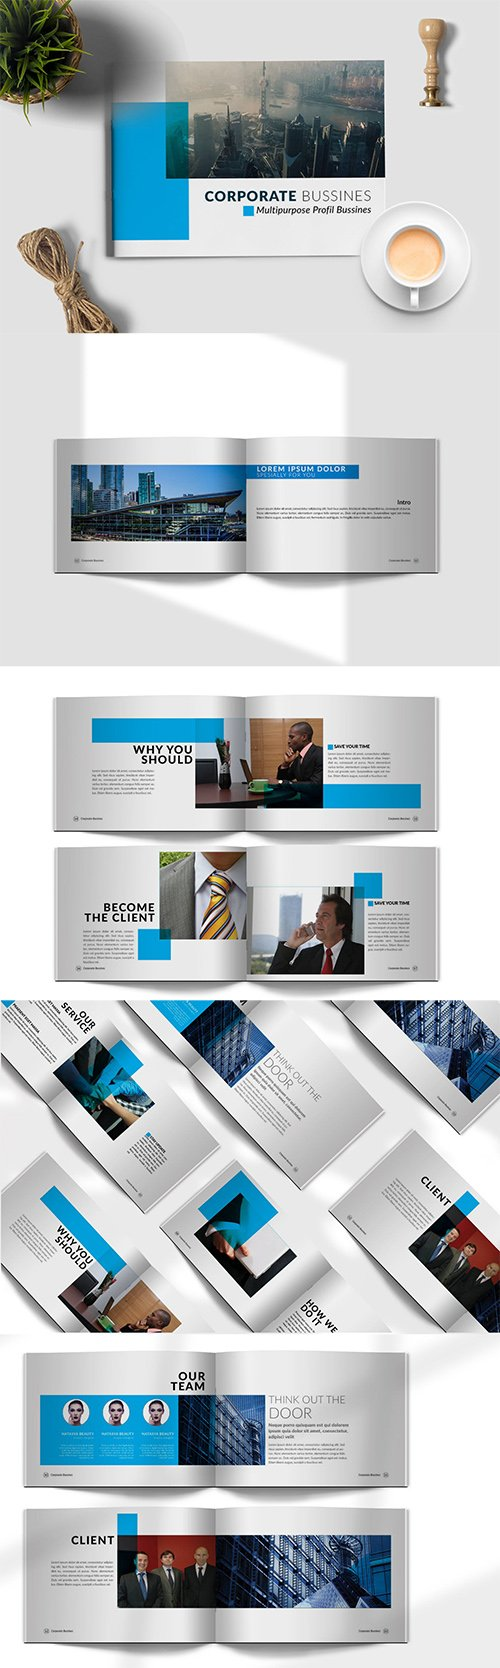 Brochure Corporate Lanscape INDD